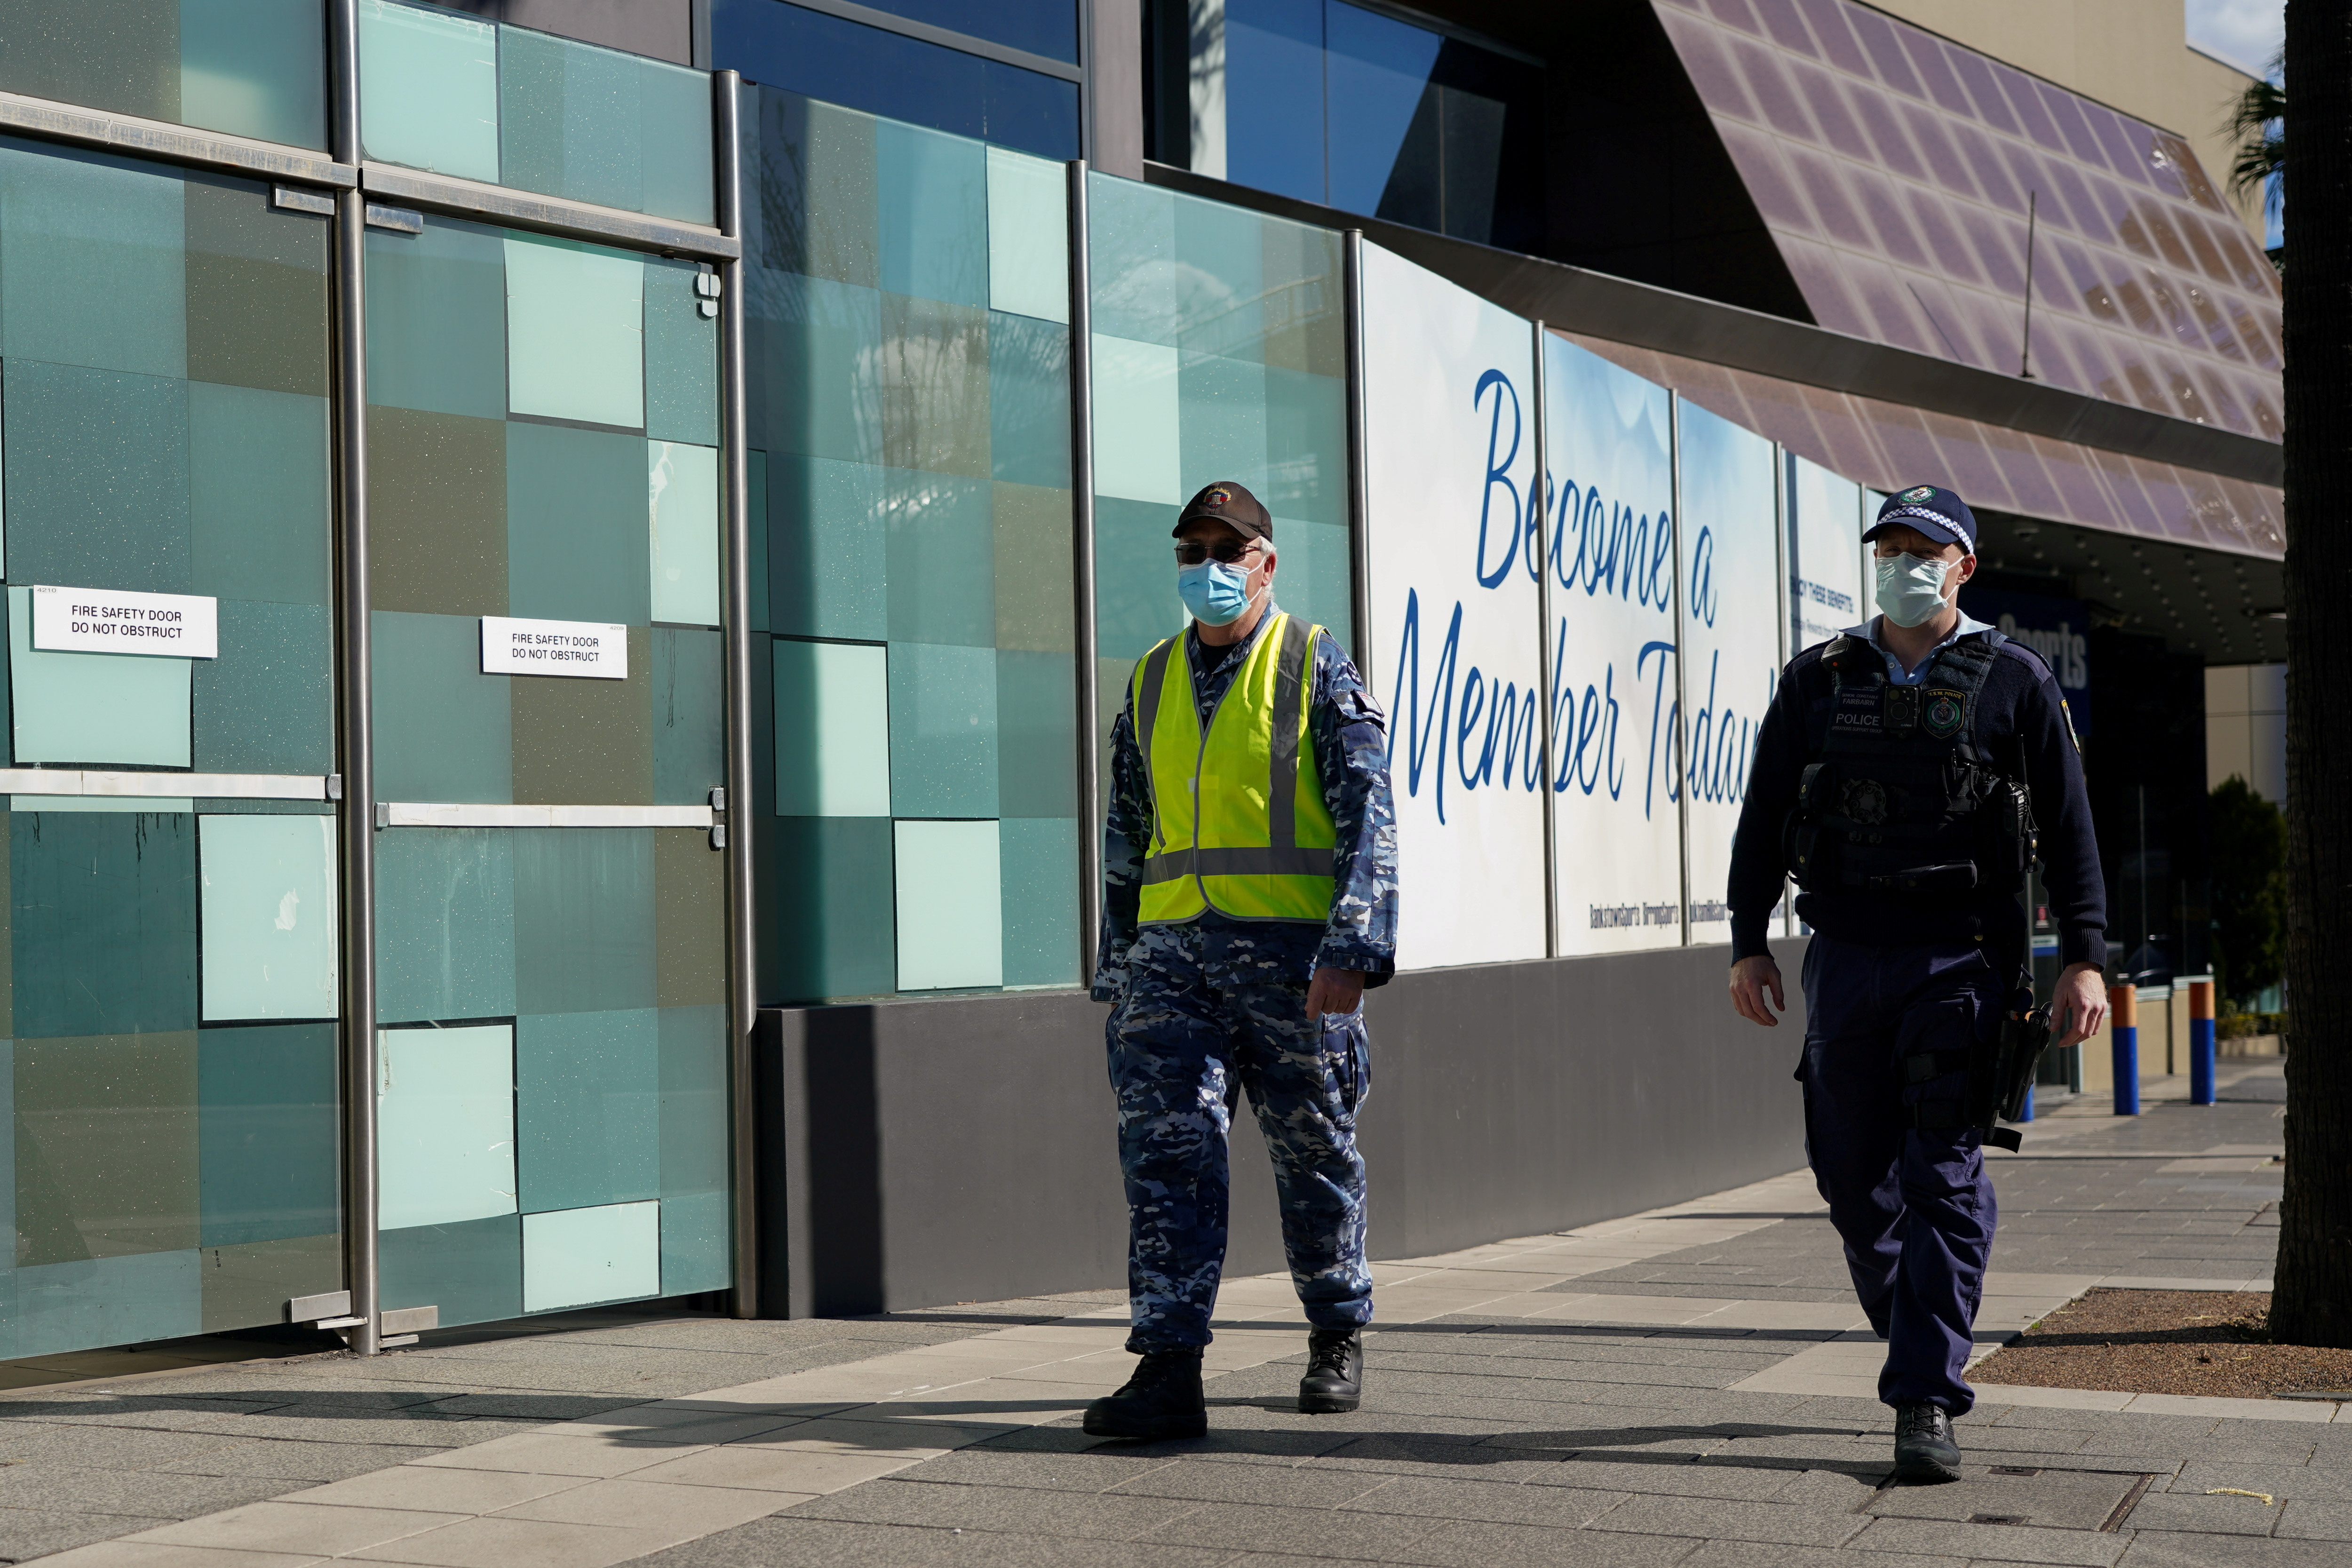 Australia reports 1,882 COVID-19 cases as police quell protests